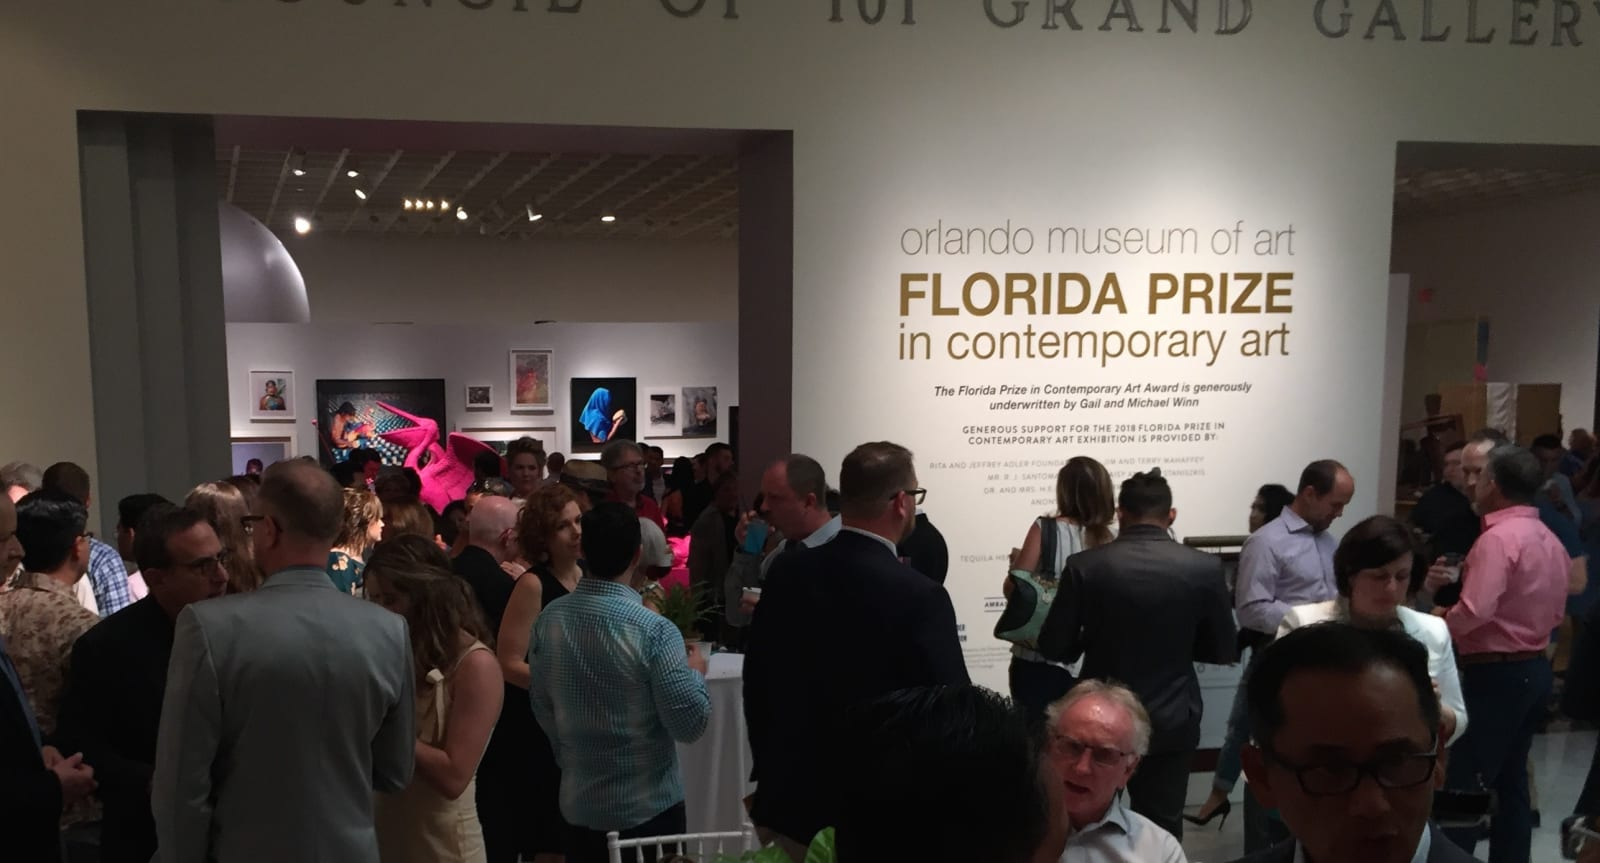 The 2018 Florida Prize in Contemporary Art